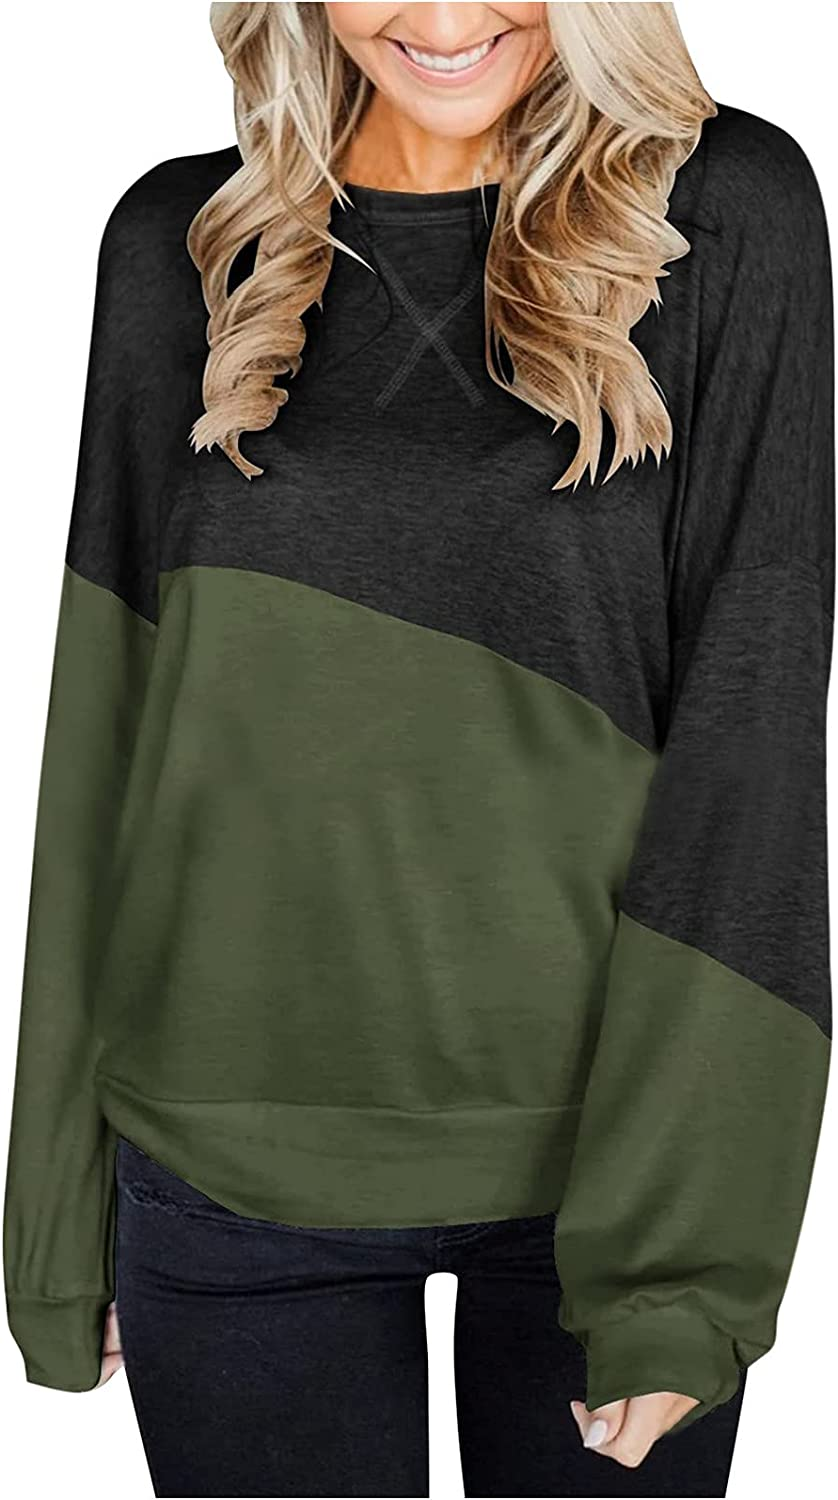 Womens Tops Stitching Contrast Color Long Sleeve Crewneck Loose Casual Tunics Blouses Simple Fashion Pullover